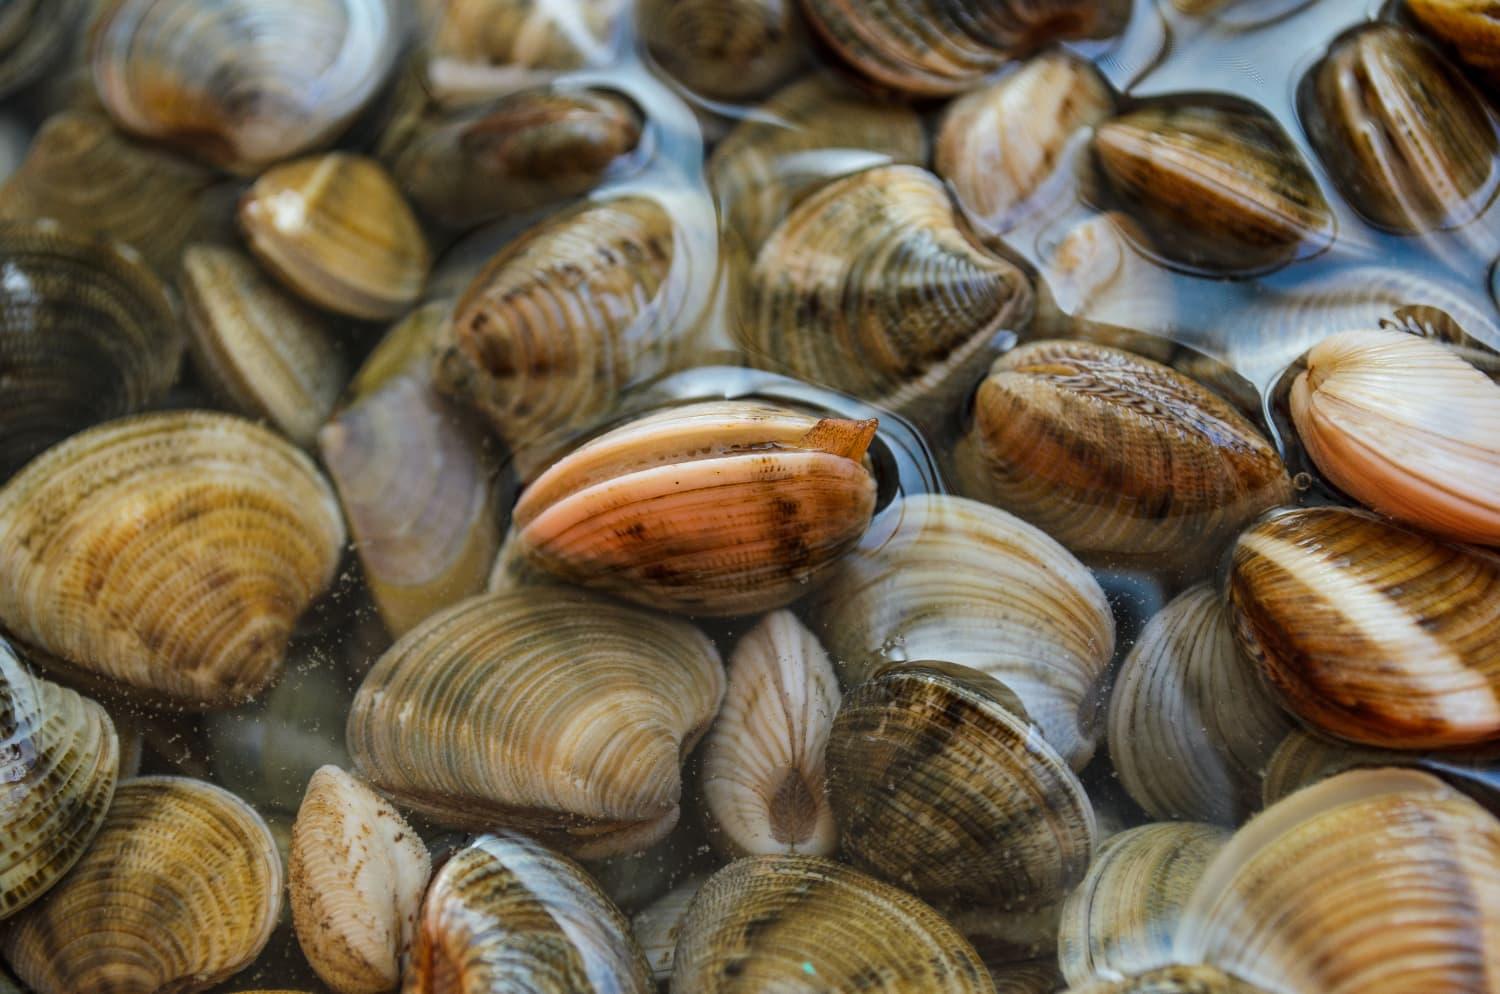 How To Clean the Sand Out of Clams